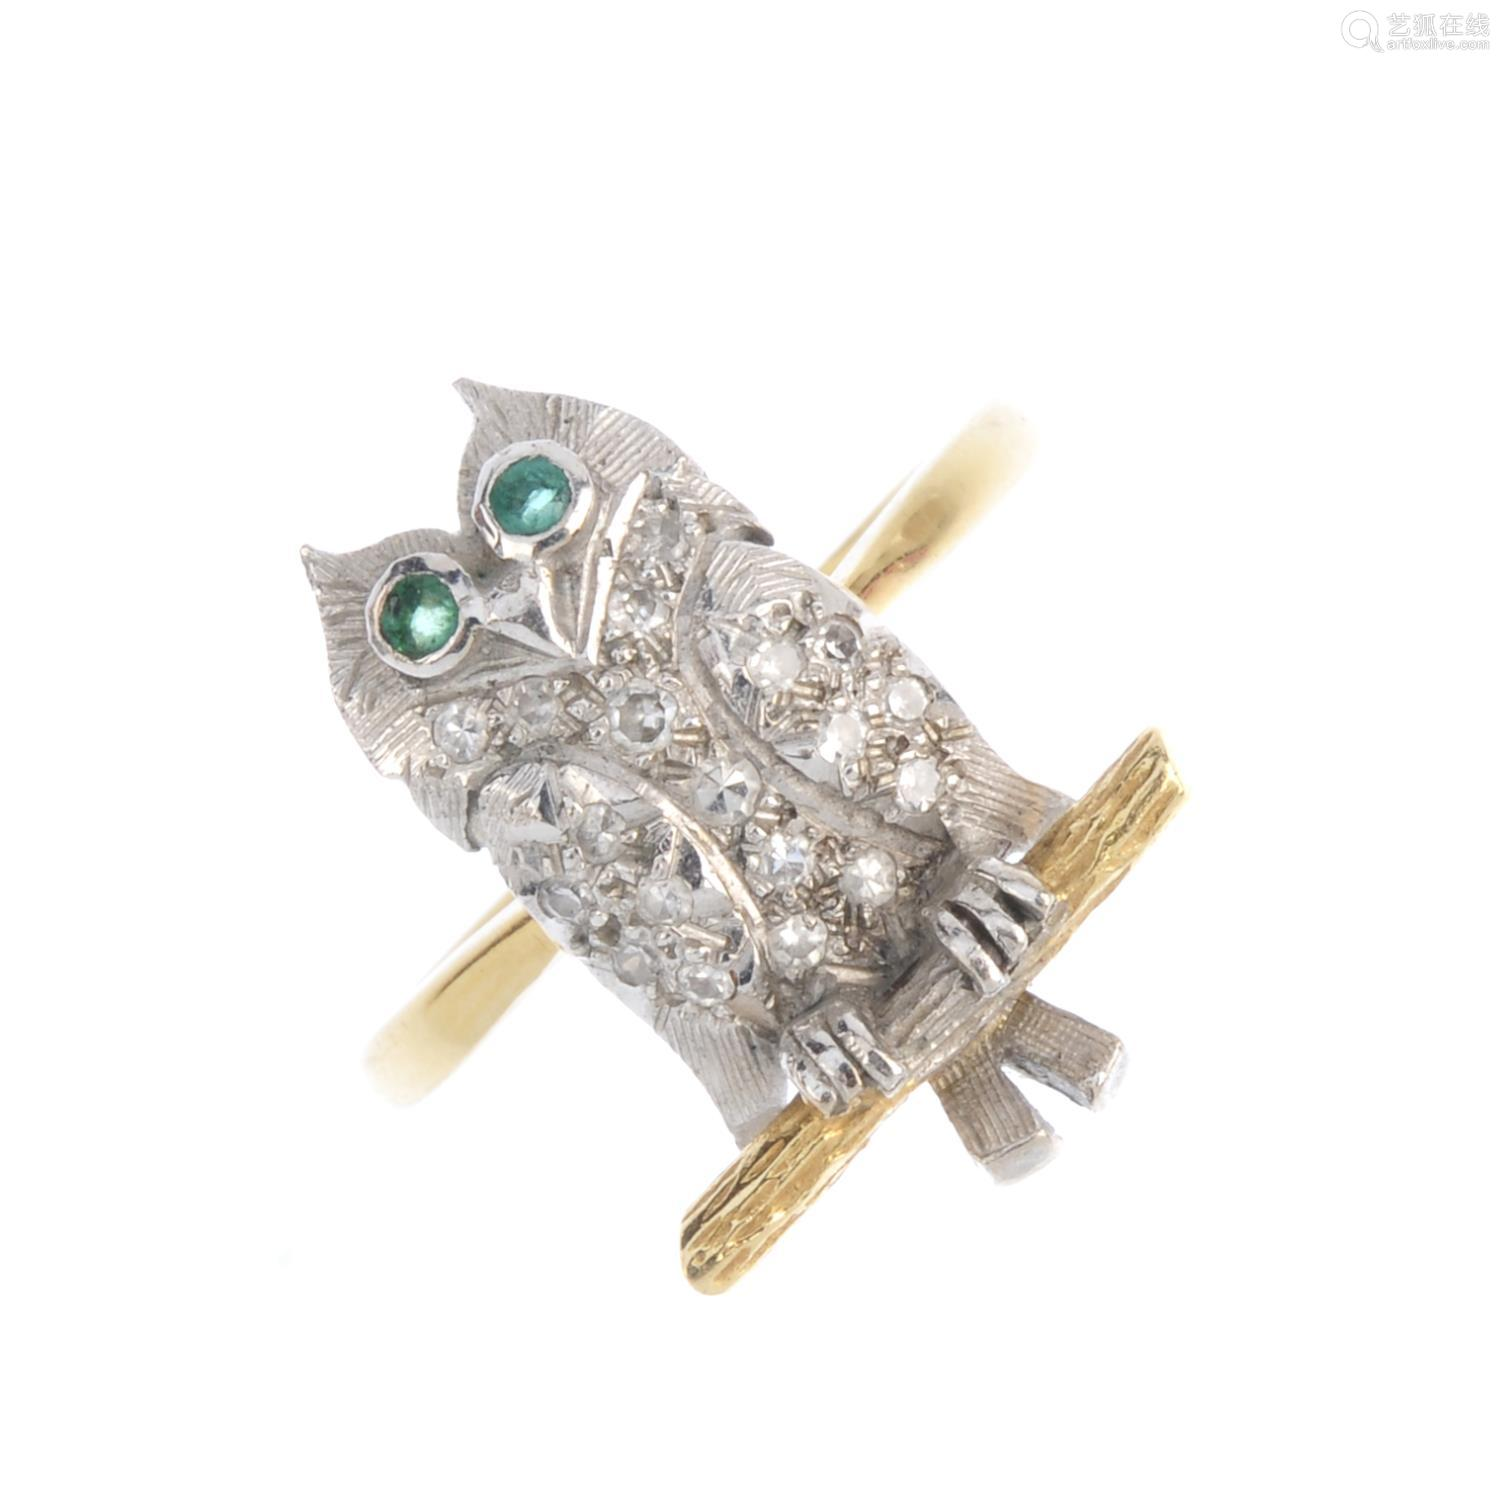 A diamond owl ring. The single-cut diamond owl, with circular-shape emerald eyes, perched upon a